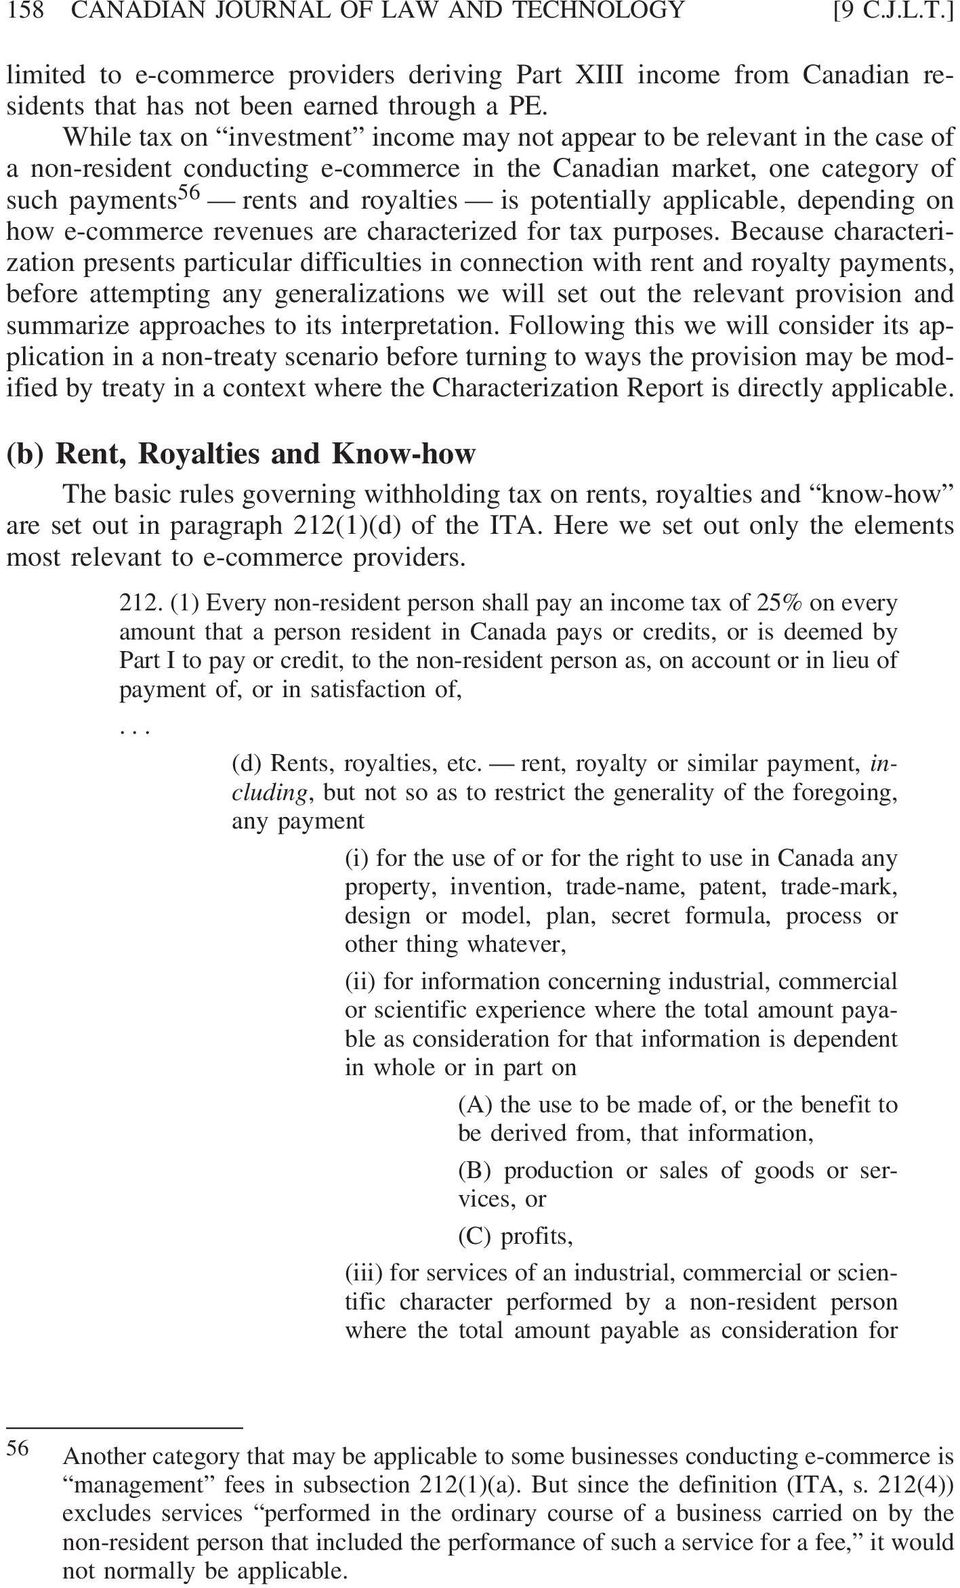 tax implications for non-residents conducting e-commerce in canada - pdf